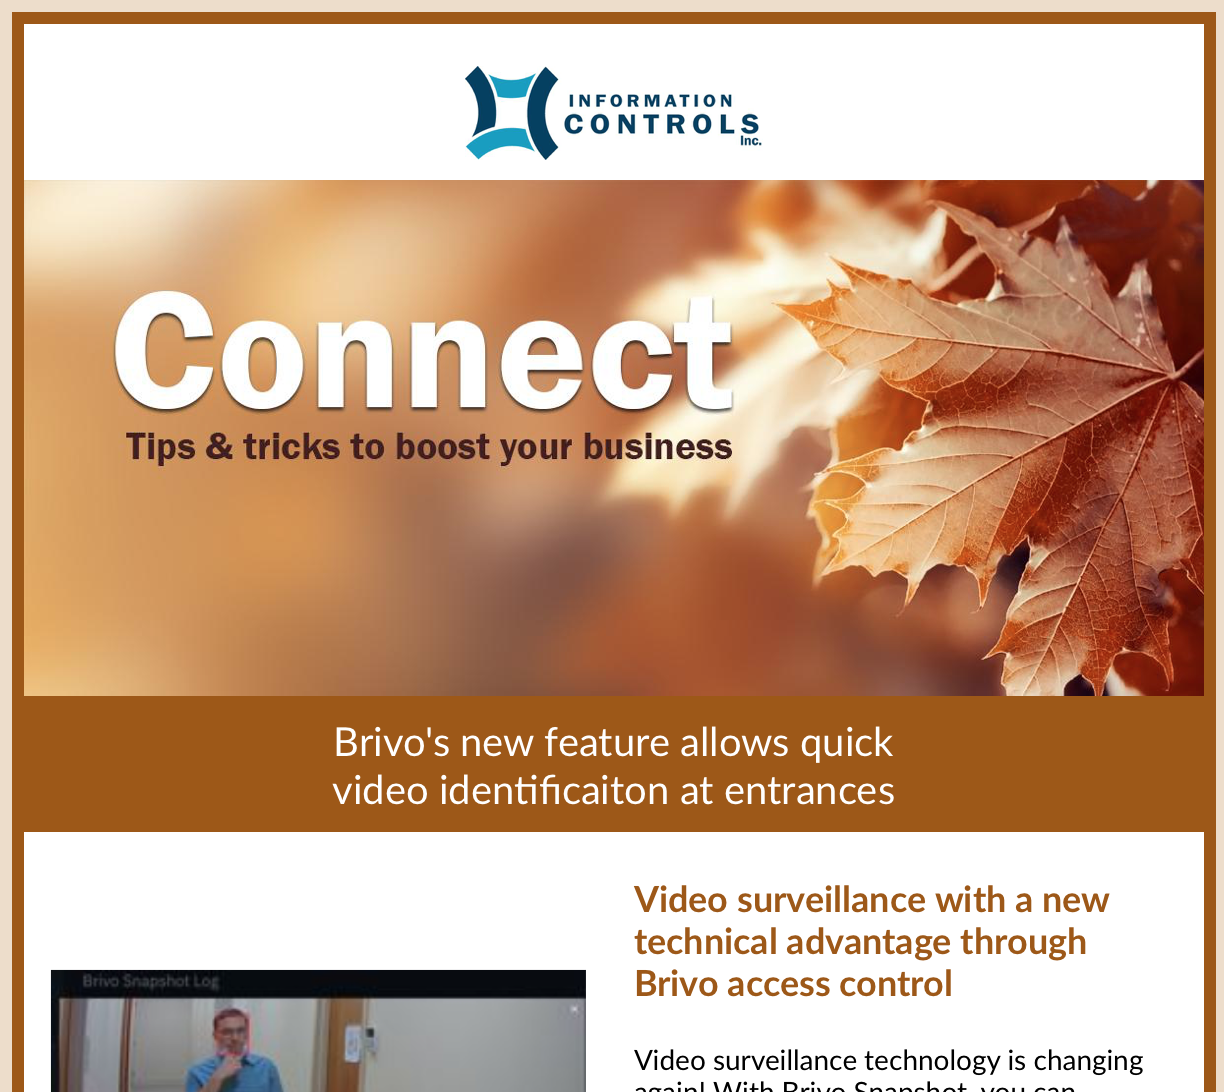 Information Controls' Fall 2021 Newsletter